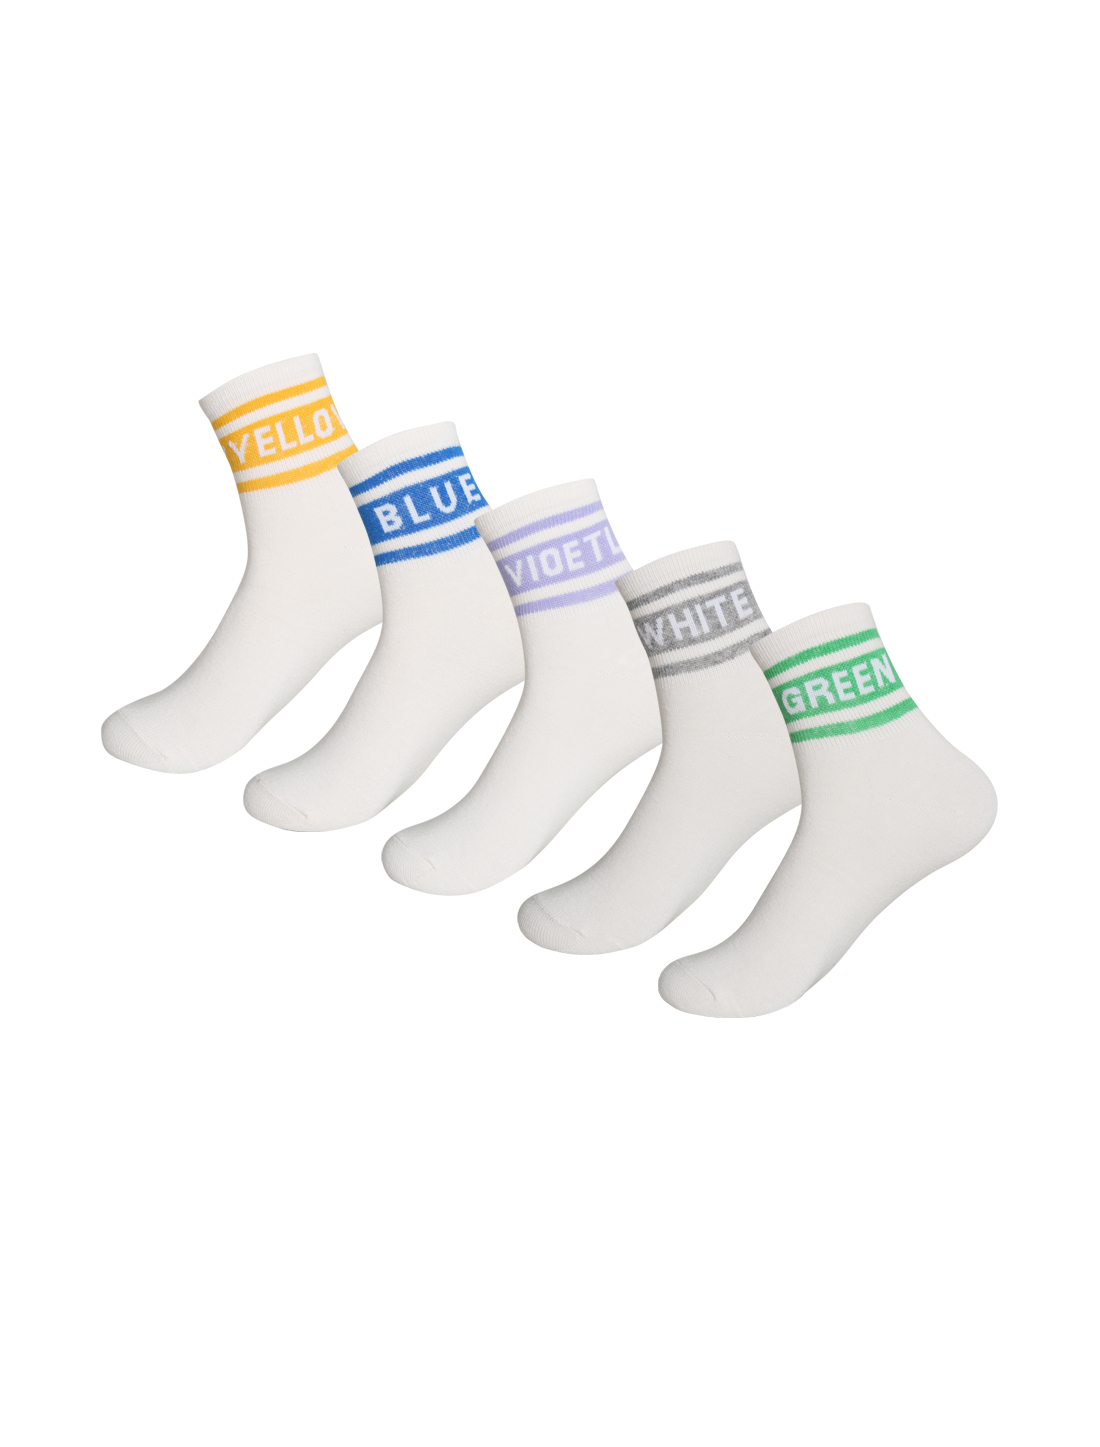 Women 5 Pack Cotton Blend Letters Crew Socks White 9-11